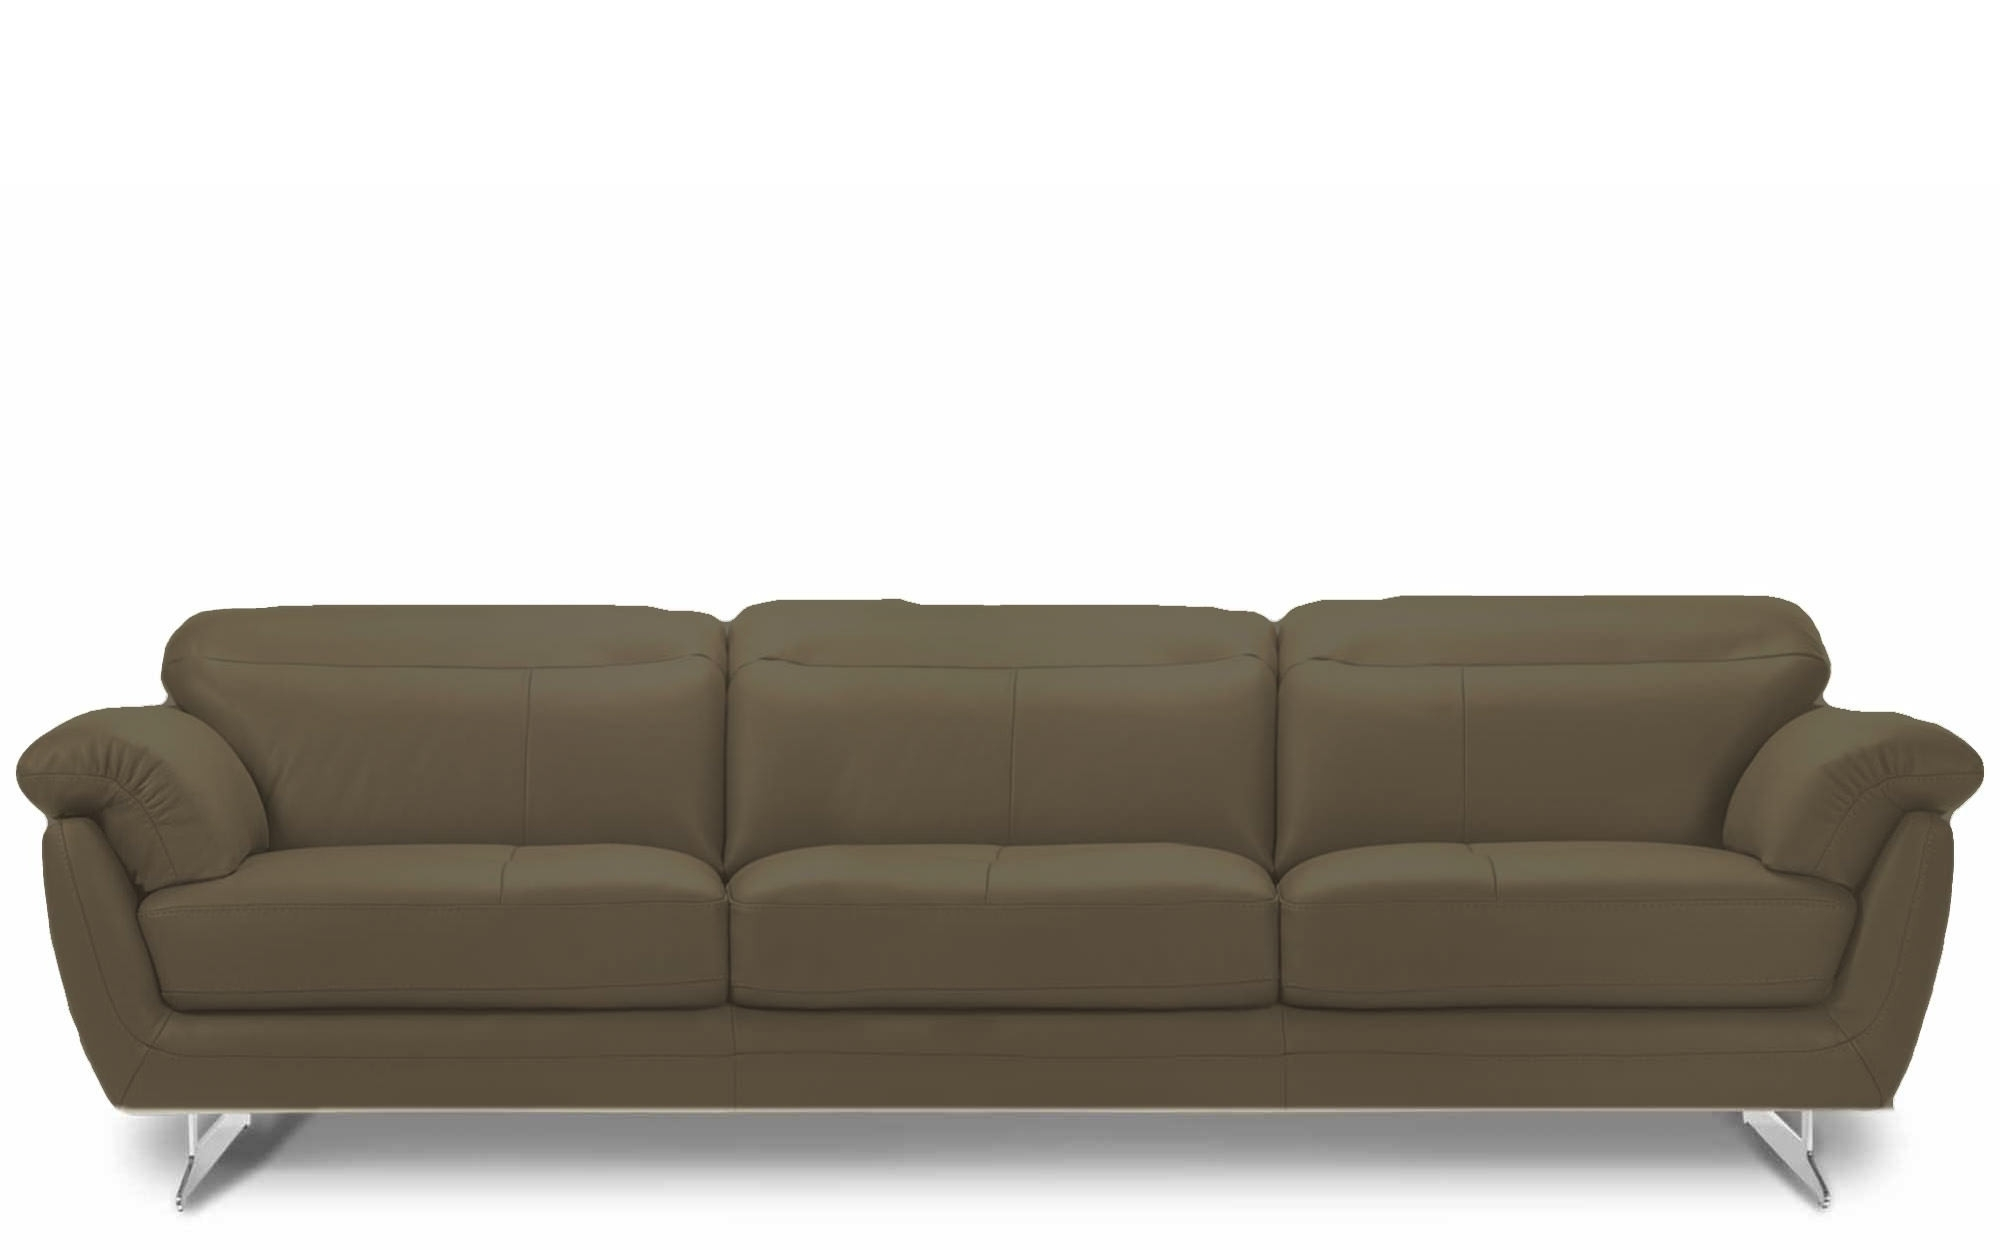 3 Seater Leather Sofas Intended For Current Rom Barbados 3 Seater Leather Sofa (View 15 of 15)